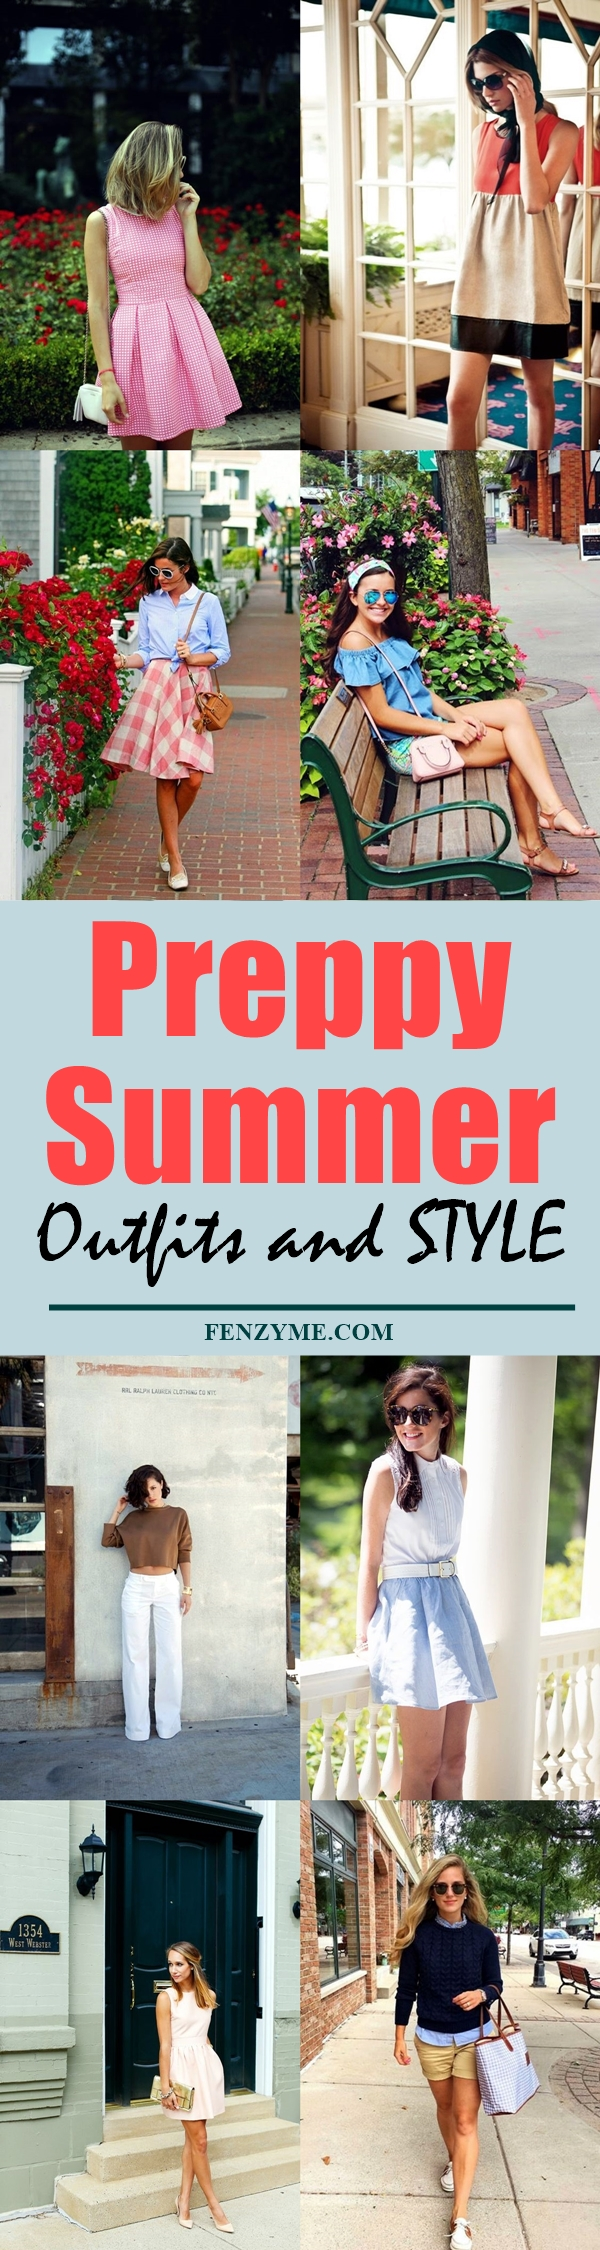 Preppy Summer Outfits and STYLE (1)